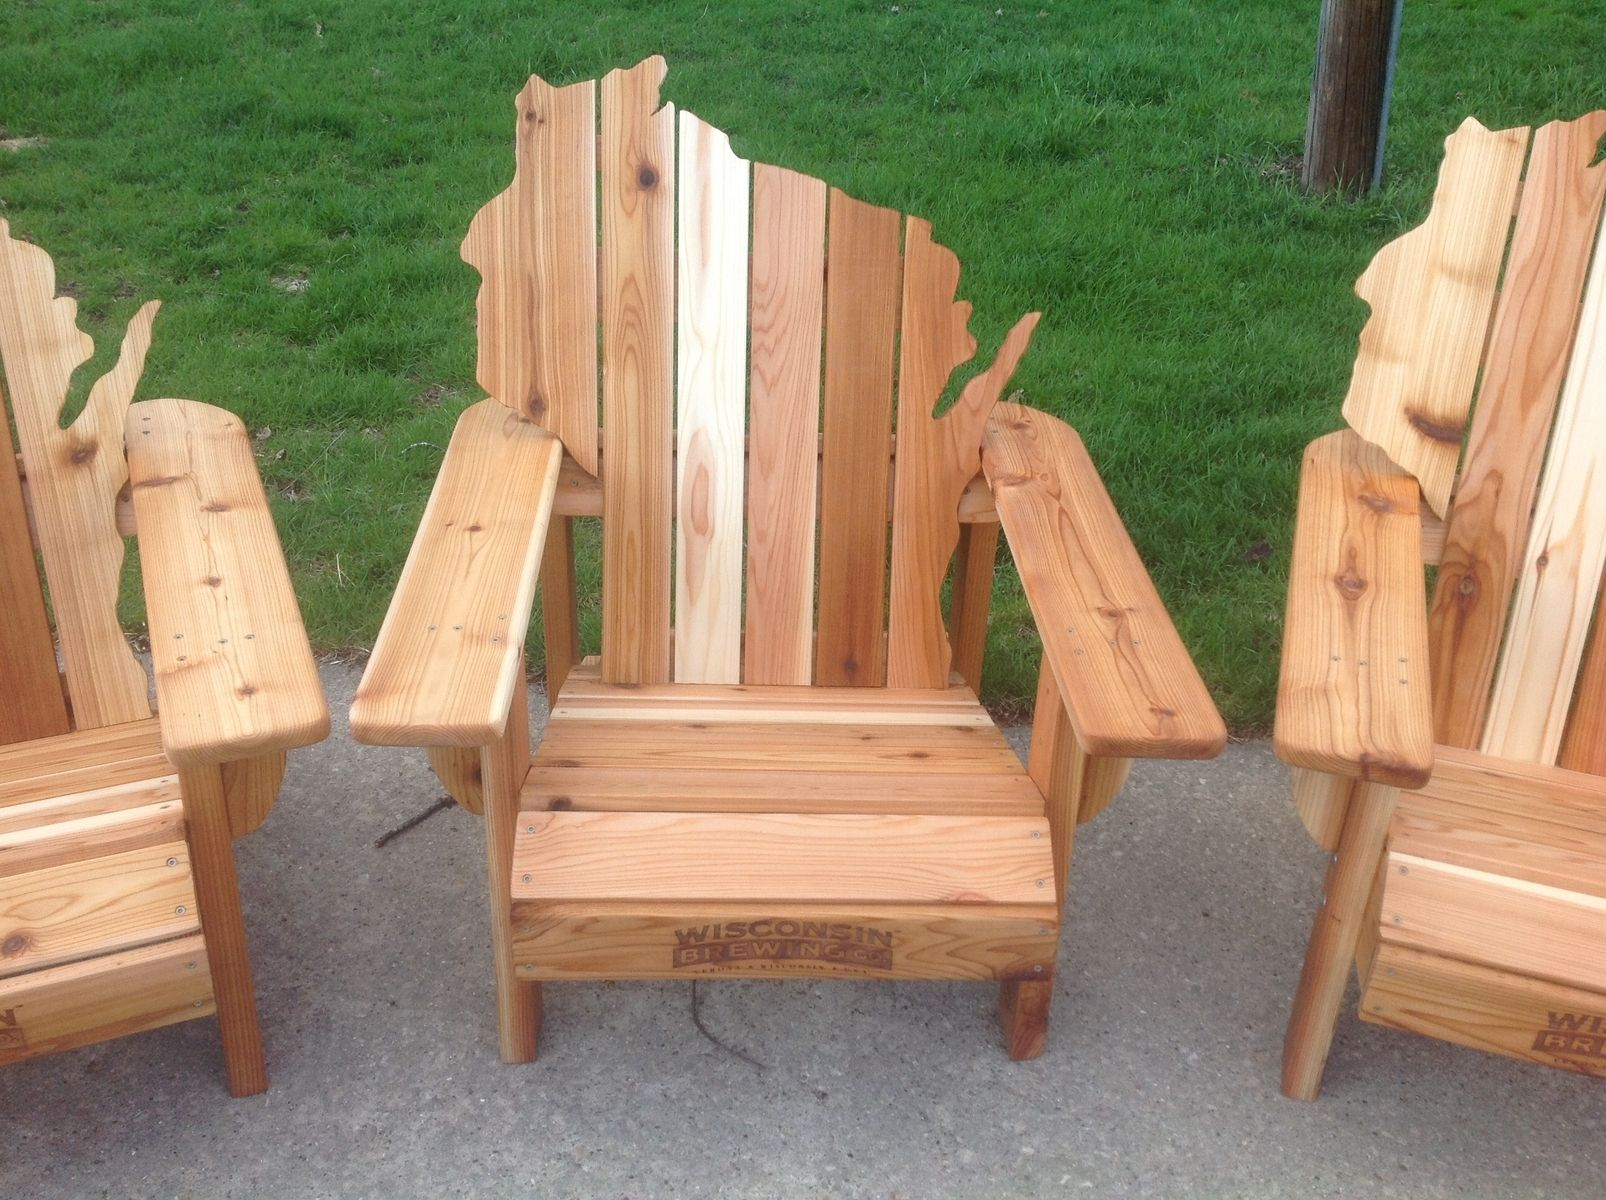 Cedar Wood Furniture Plans ~ Handmade cedar adirondack wisconsin chairs with